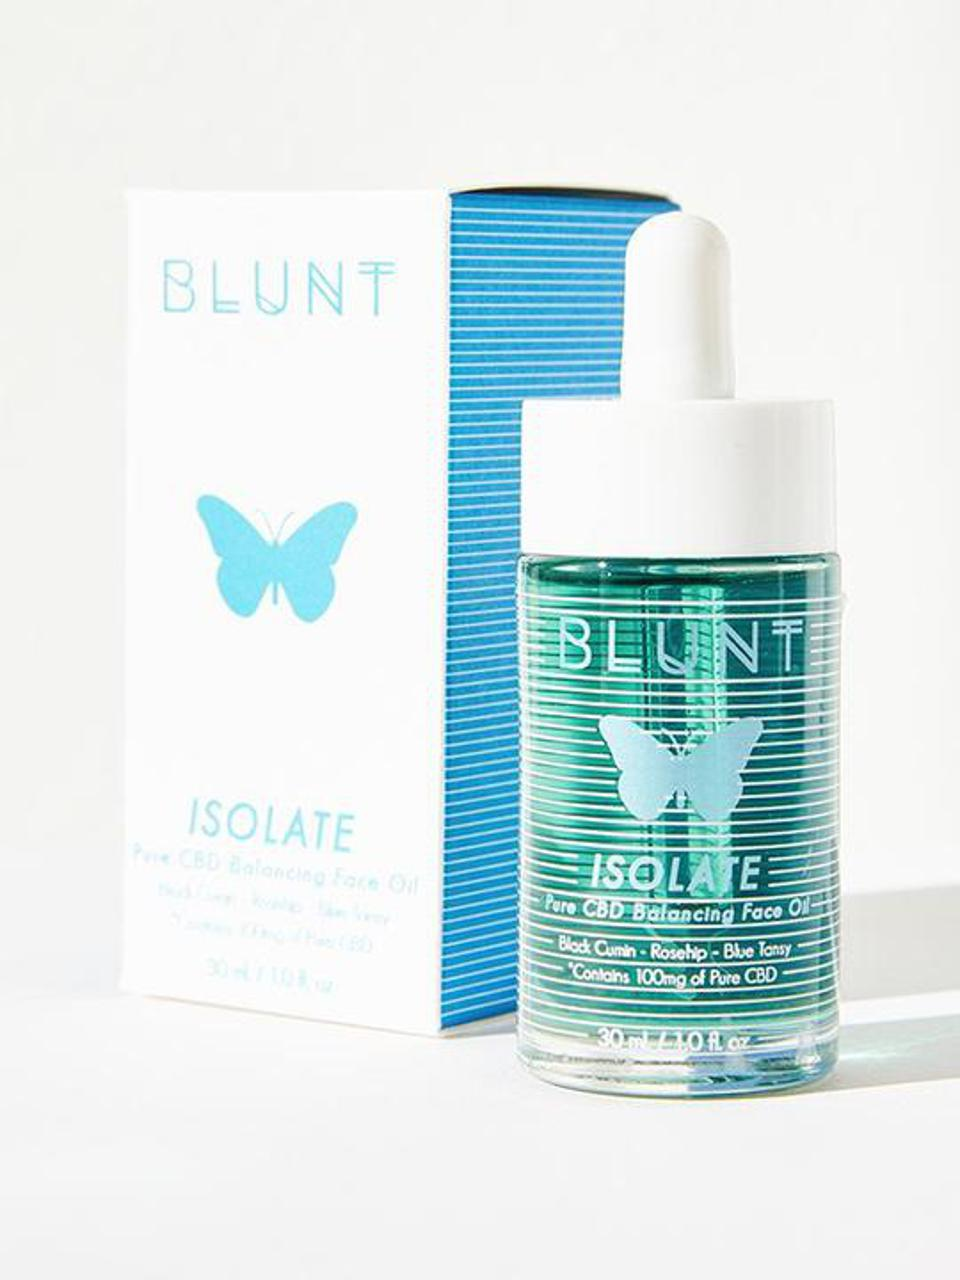 BLUNT Isolate Pure Balancing CBD Face Oil